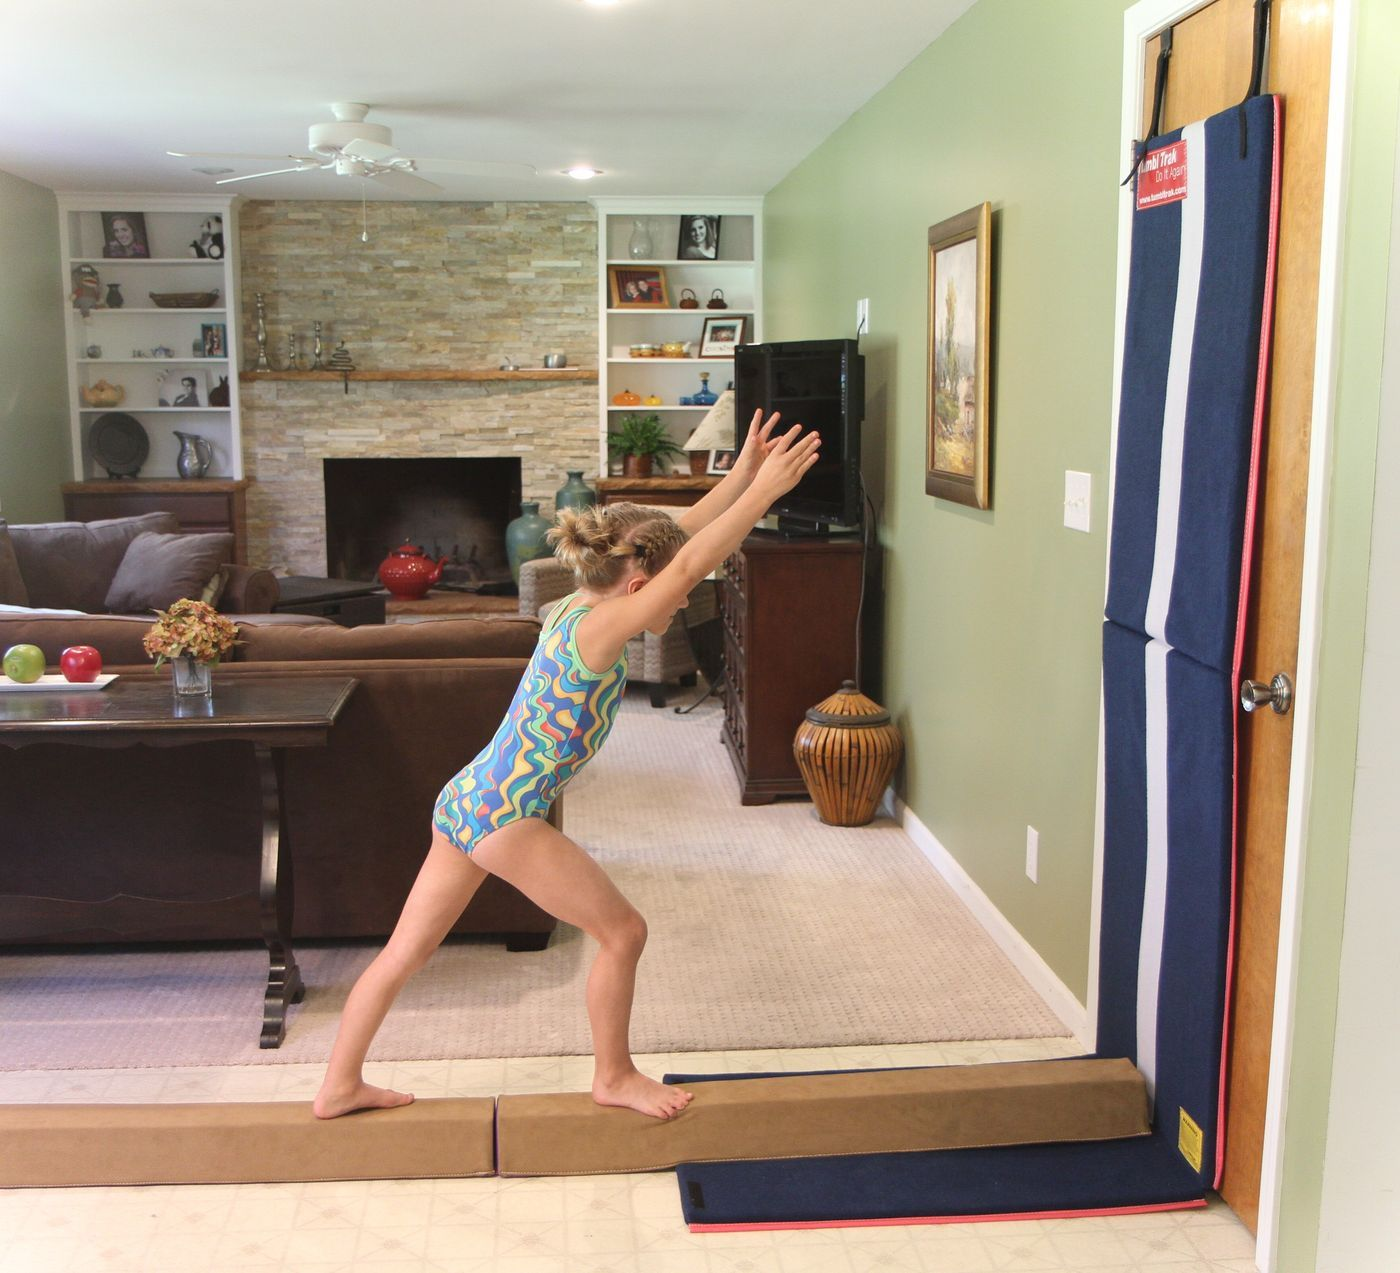 Handstand Homework tumbling gymnastics bars beginner mat